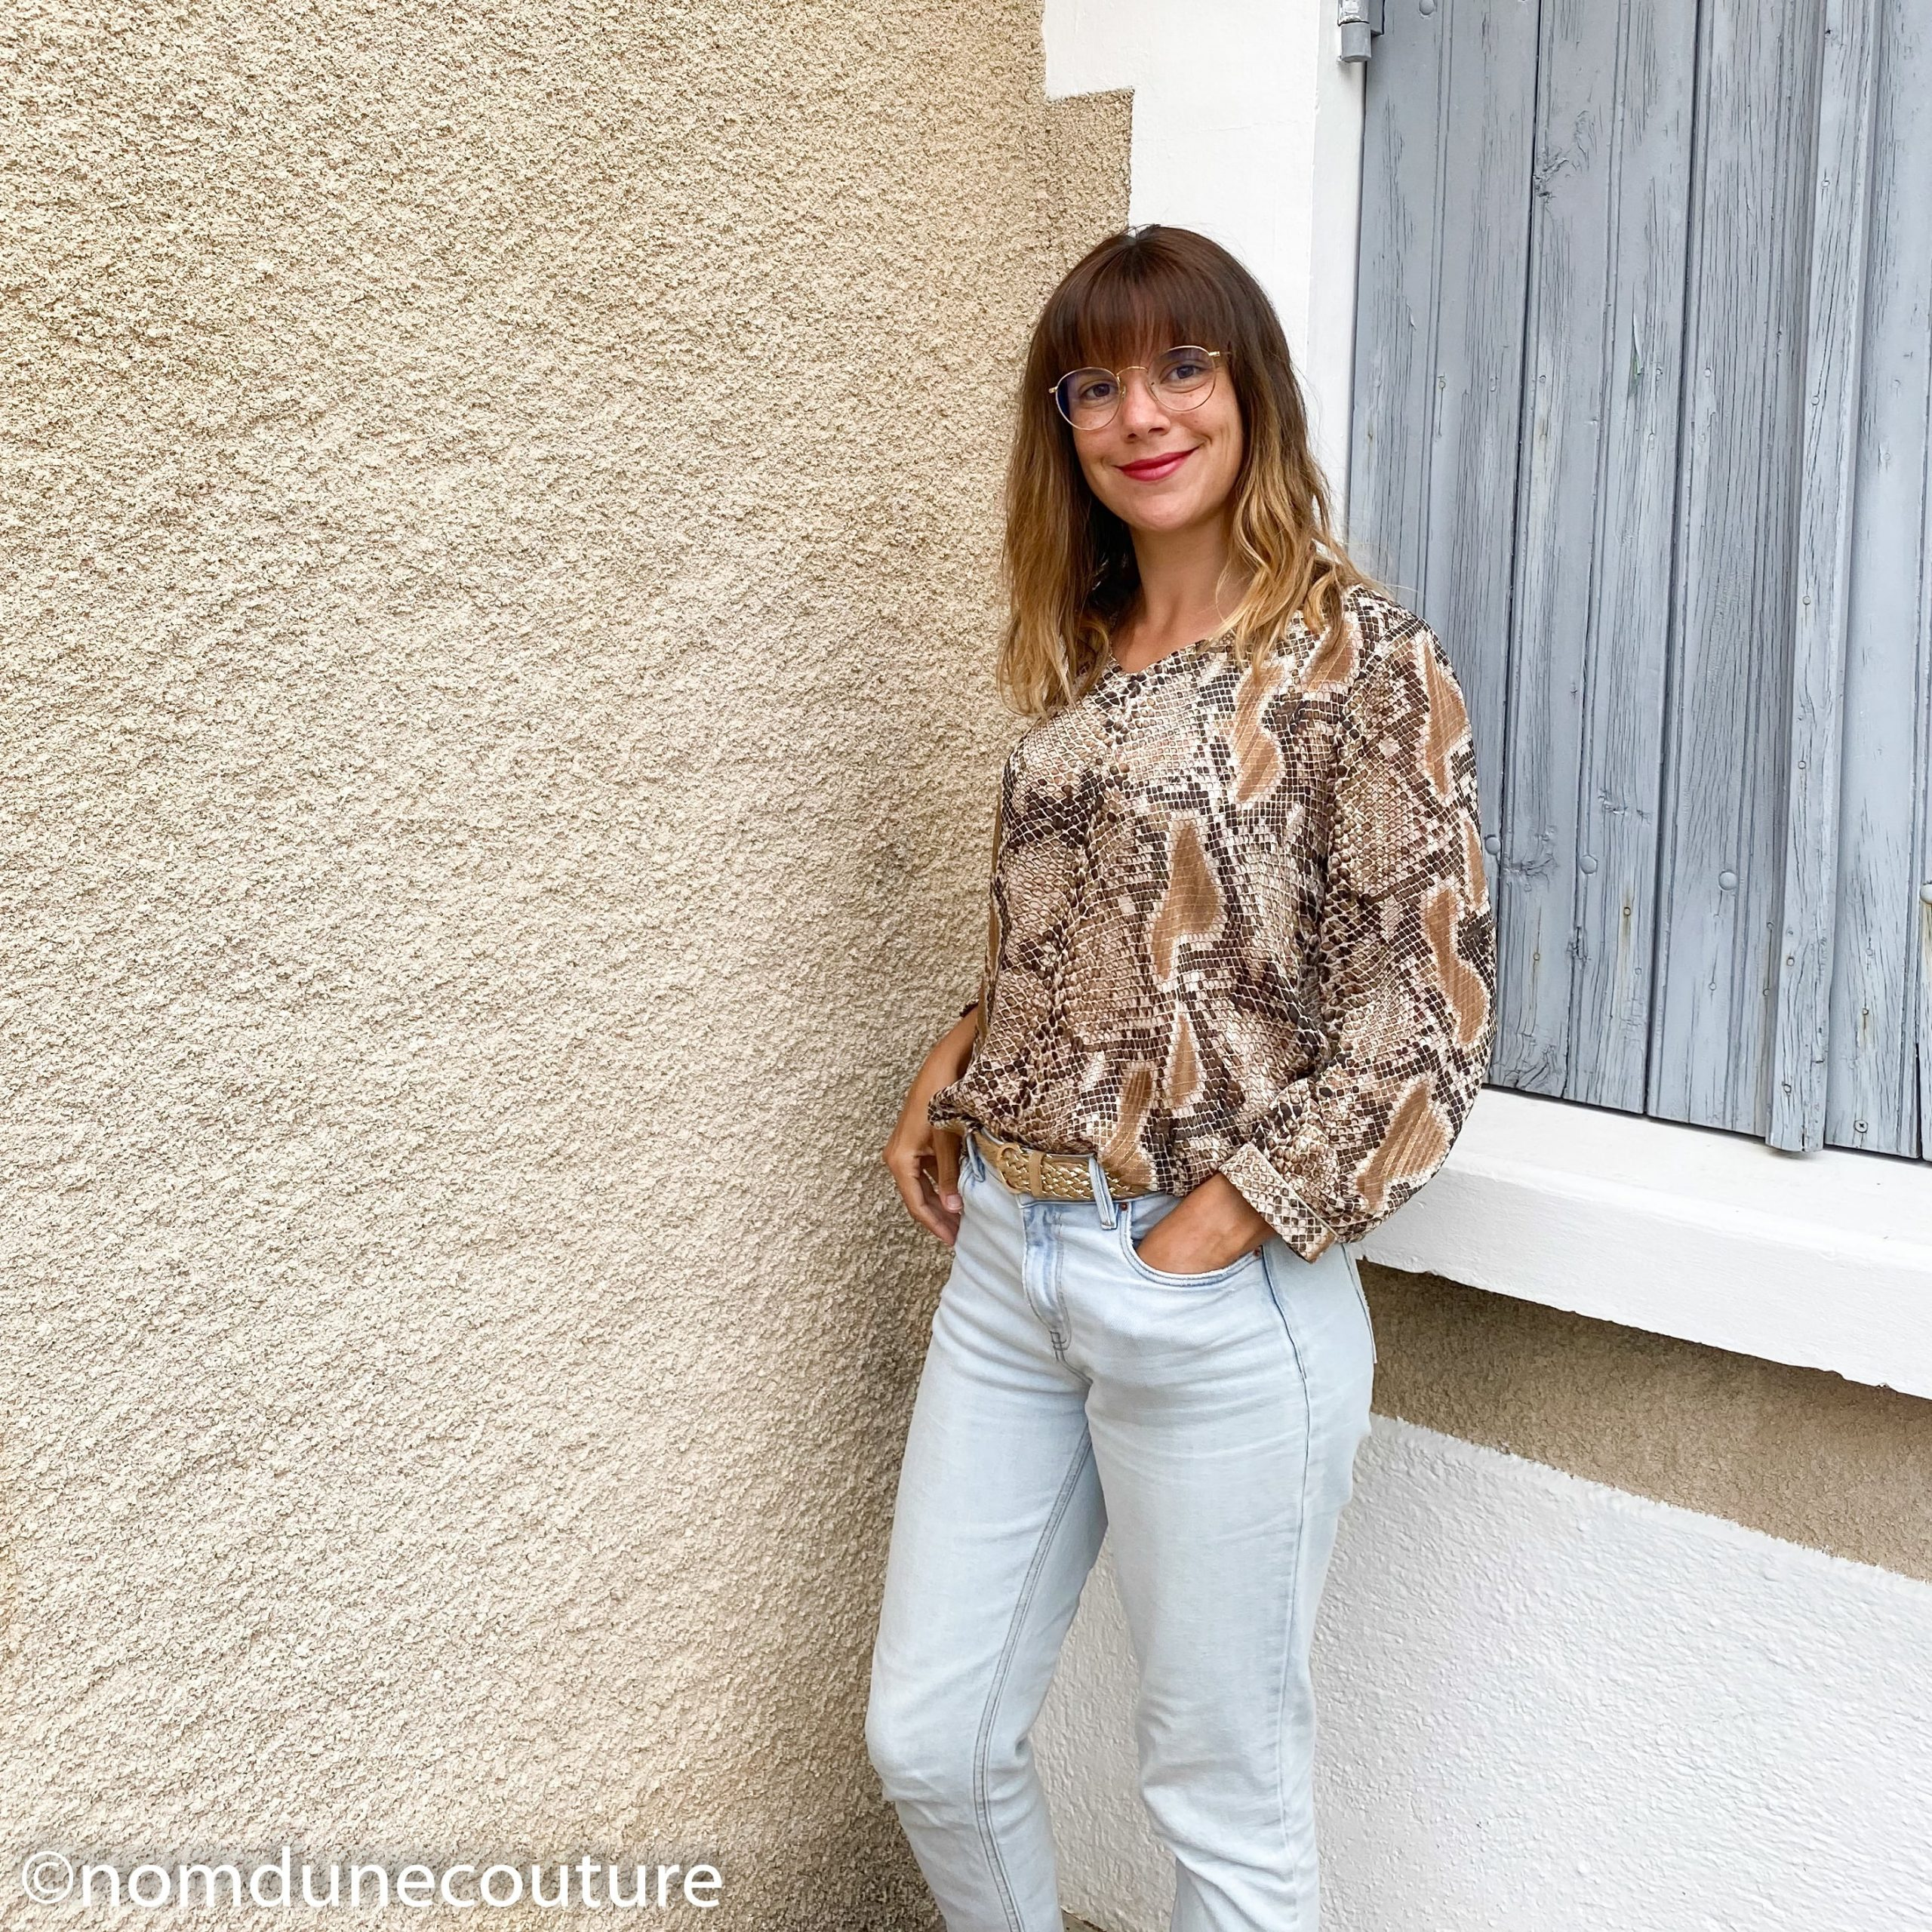 comment porter la blouse MS 10.19 mouna sew